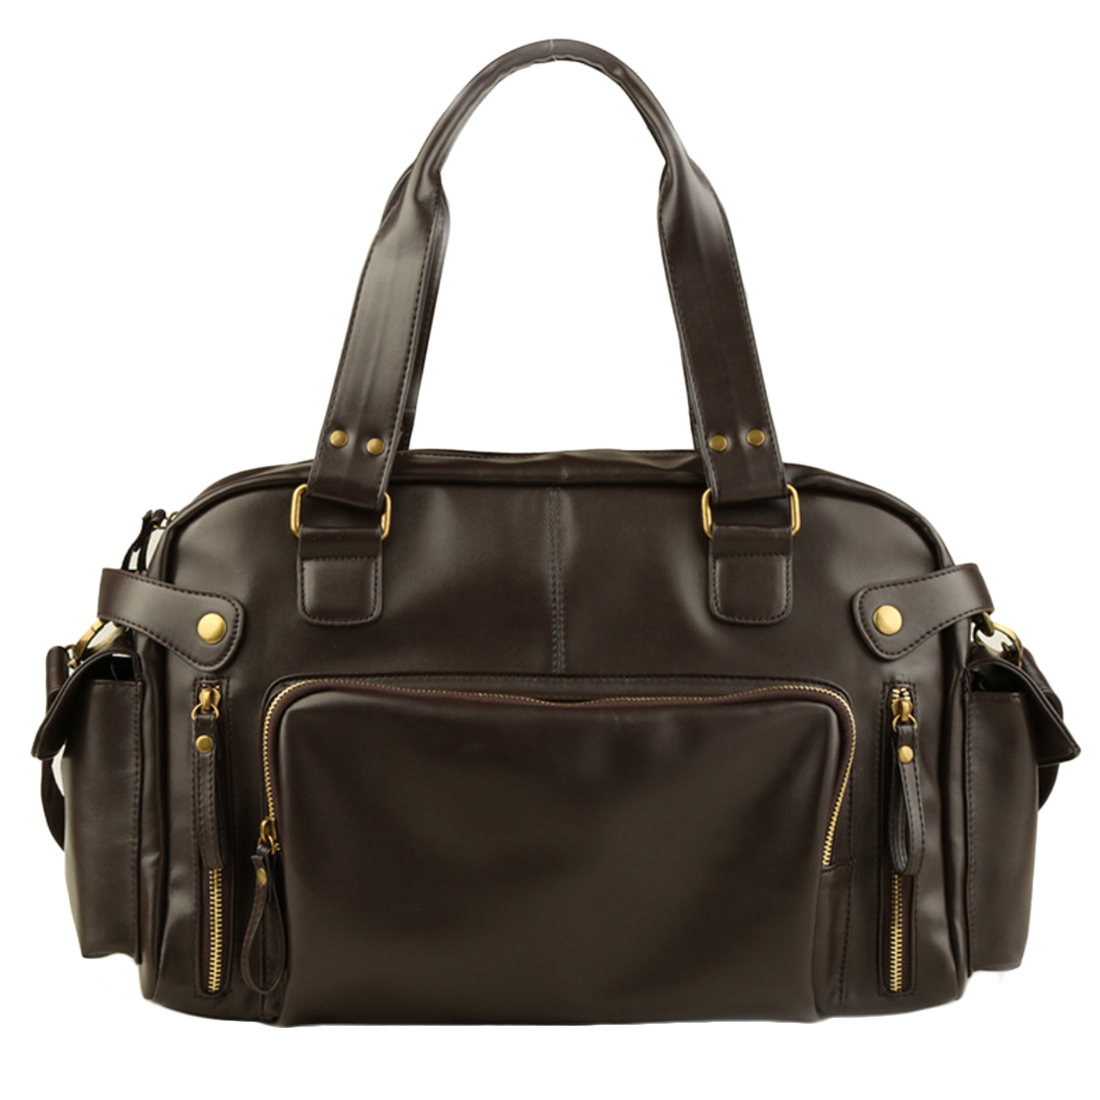 Men's Belts Men's Wallets Free U.S. Shipping   Free 2-Day Over $ Men's Bags Leather Traveler Duffle. Leather Traveler Duffle $ Silas Backpack. Silas We charge $25 + shipping for conditioning or head to a store for onsite conditioning for Free and the full Will Leather .